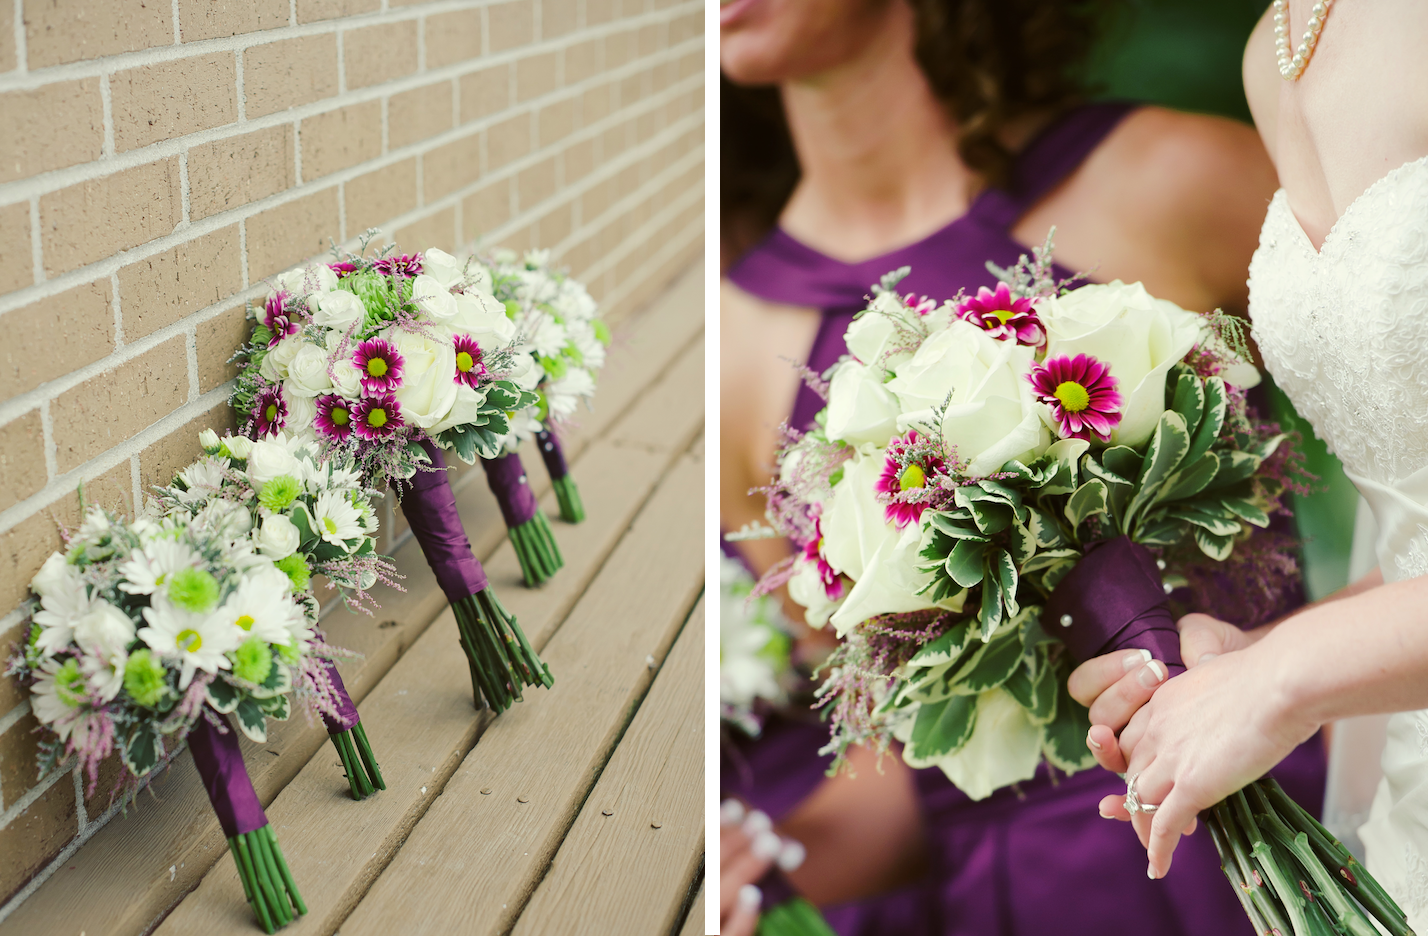 Elegant-rustic-wedding-ivory-purple-bouquets-for-brides-and-bridesmaids.original